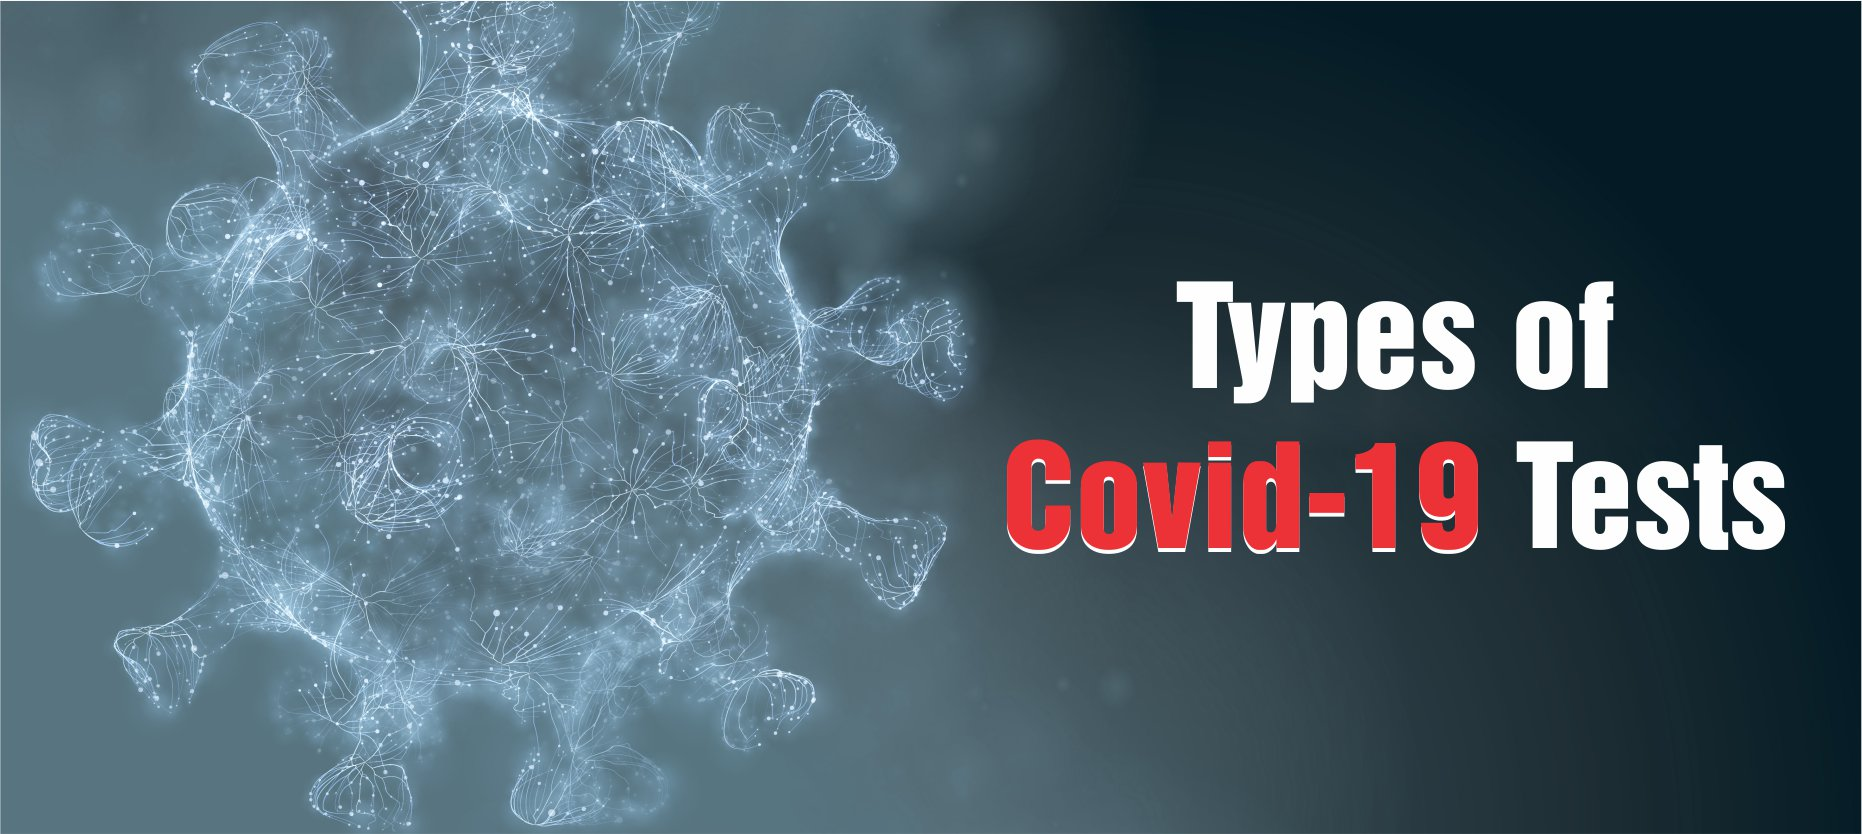 The Different Types Of Covid-19 Tests